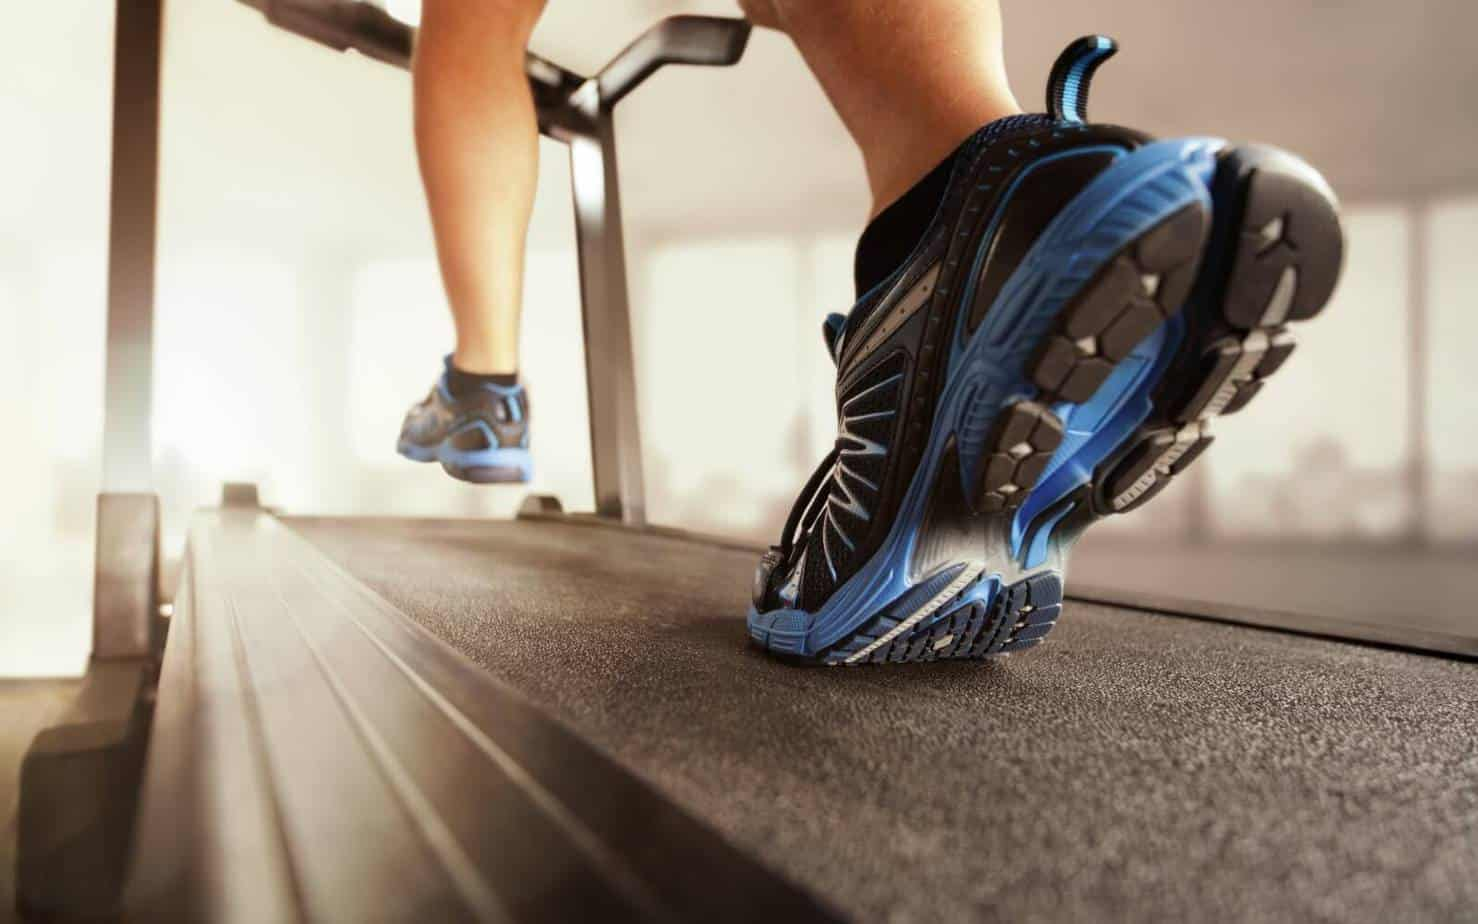 man speed walking on treadmill for HIIT workout in the morning